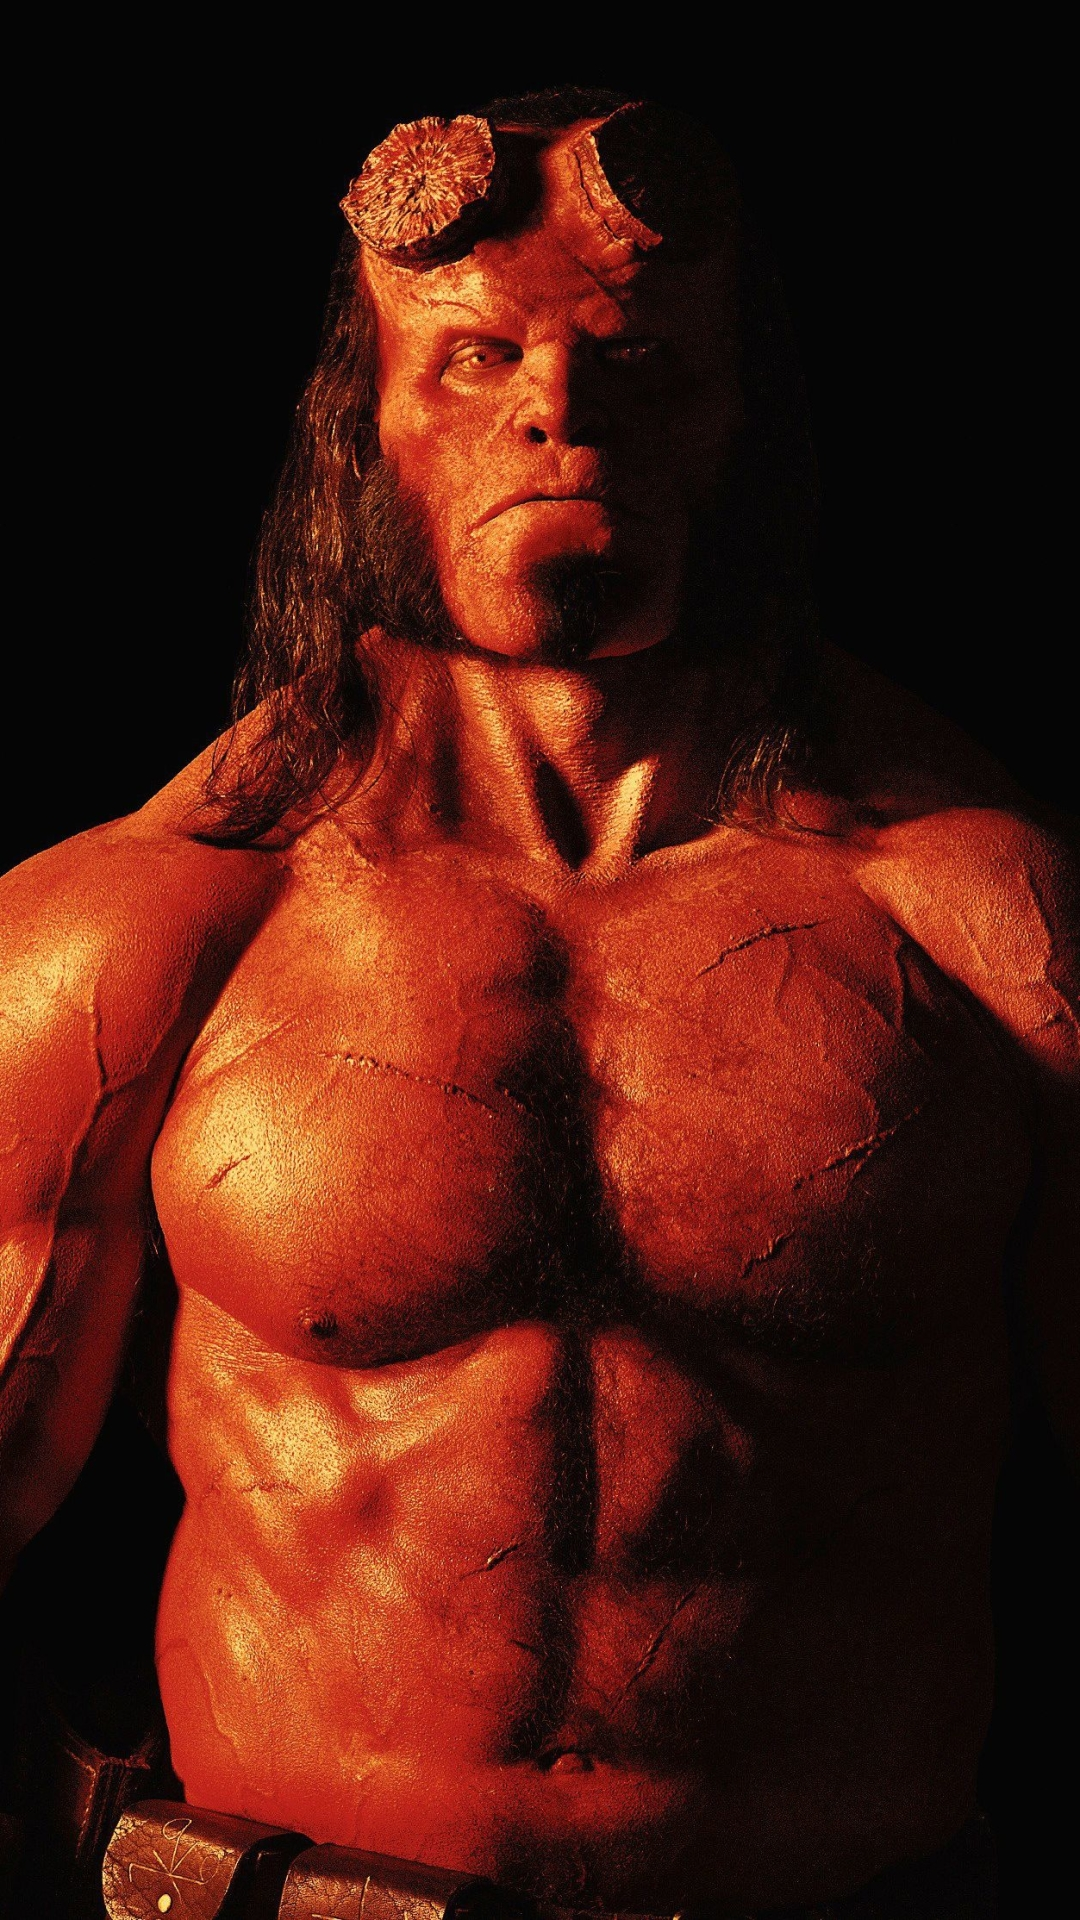 MovieHellboy 2019 1080x1920 Wallpaper ID 696638 1080x1920